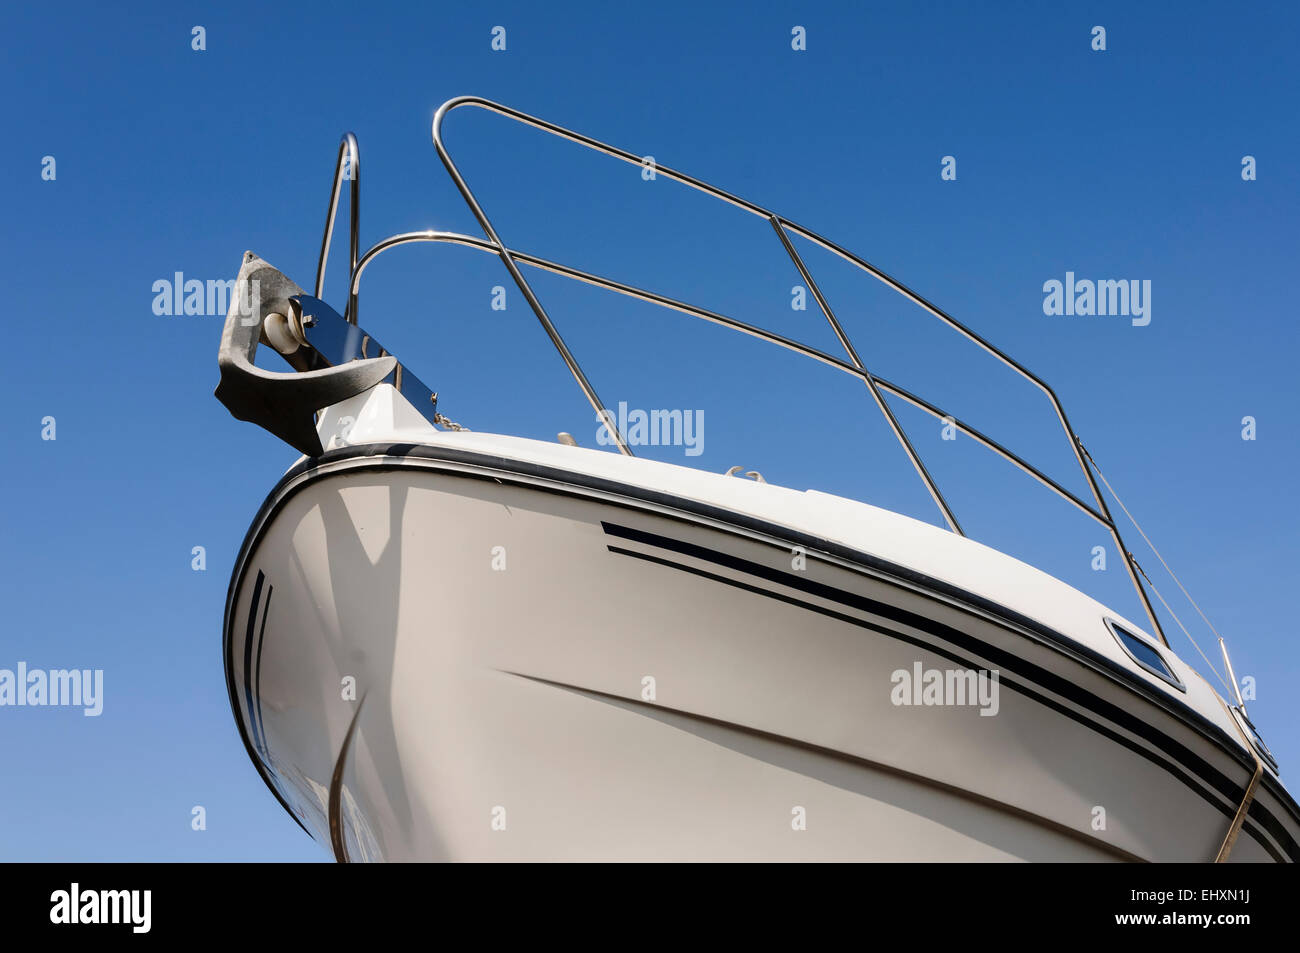 Bow of a boat with an anchor Stock Photo